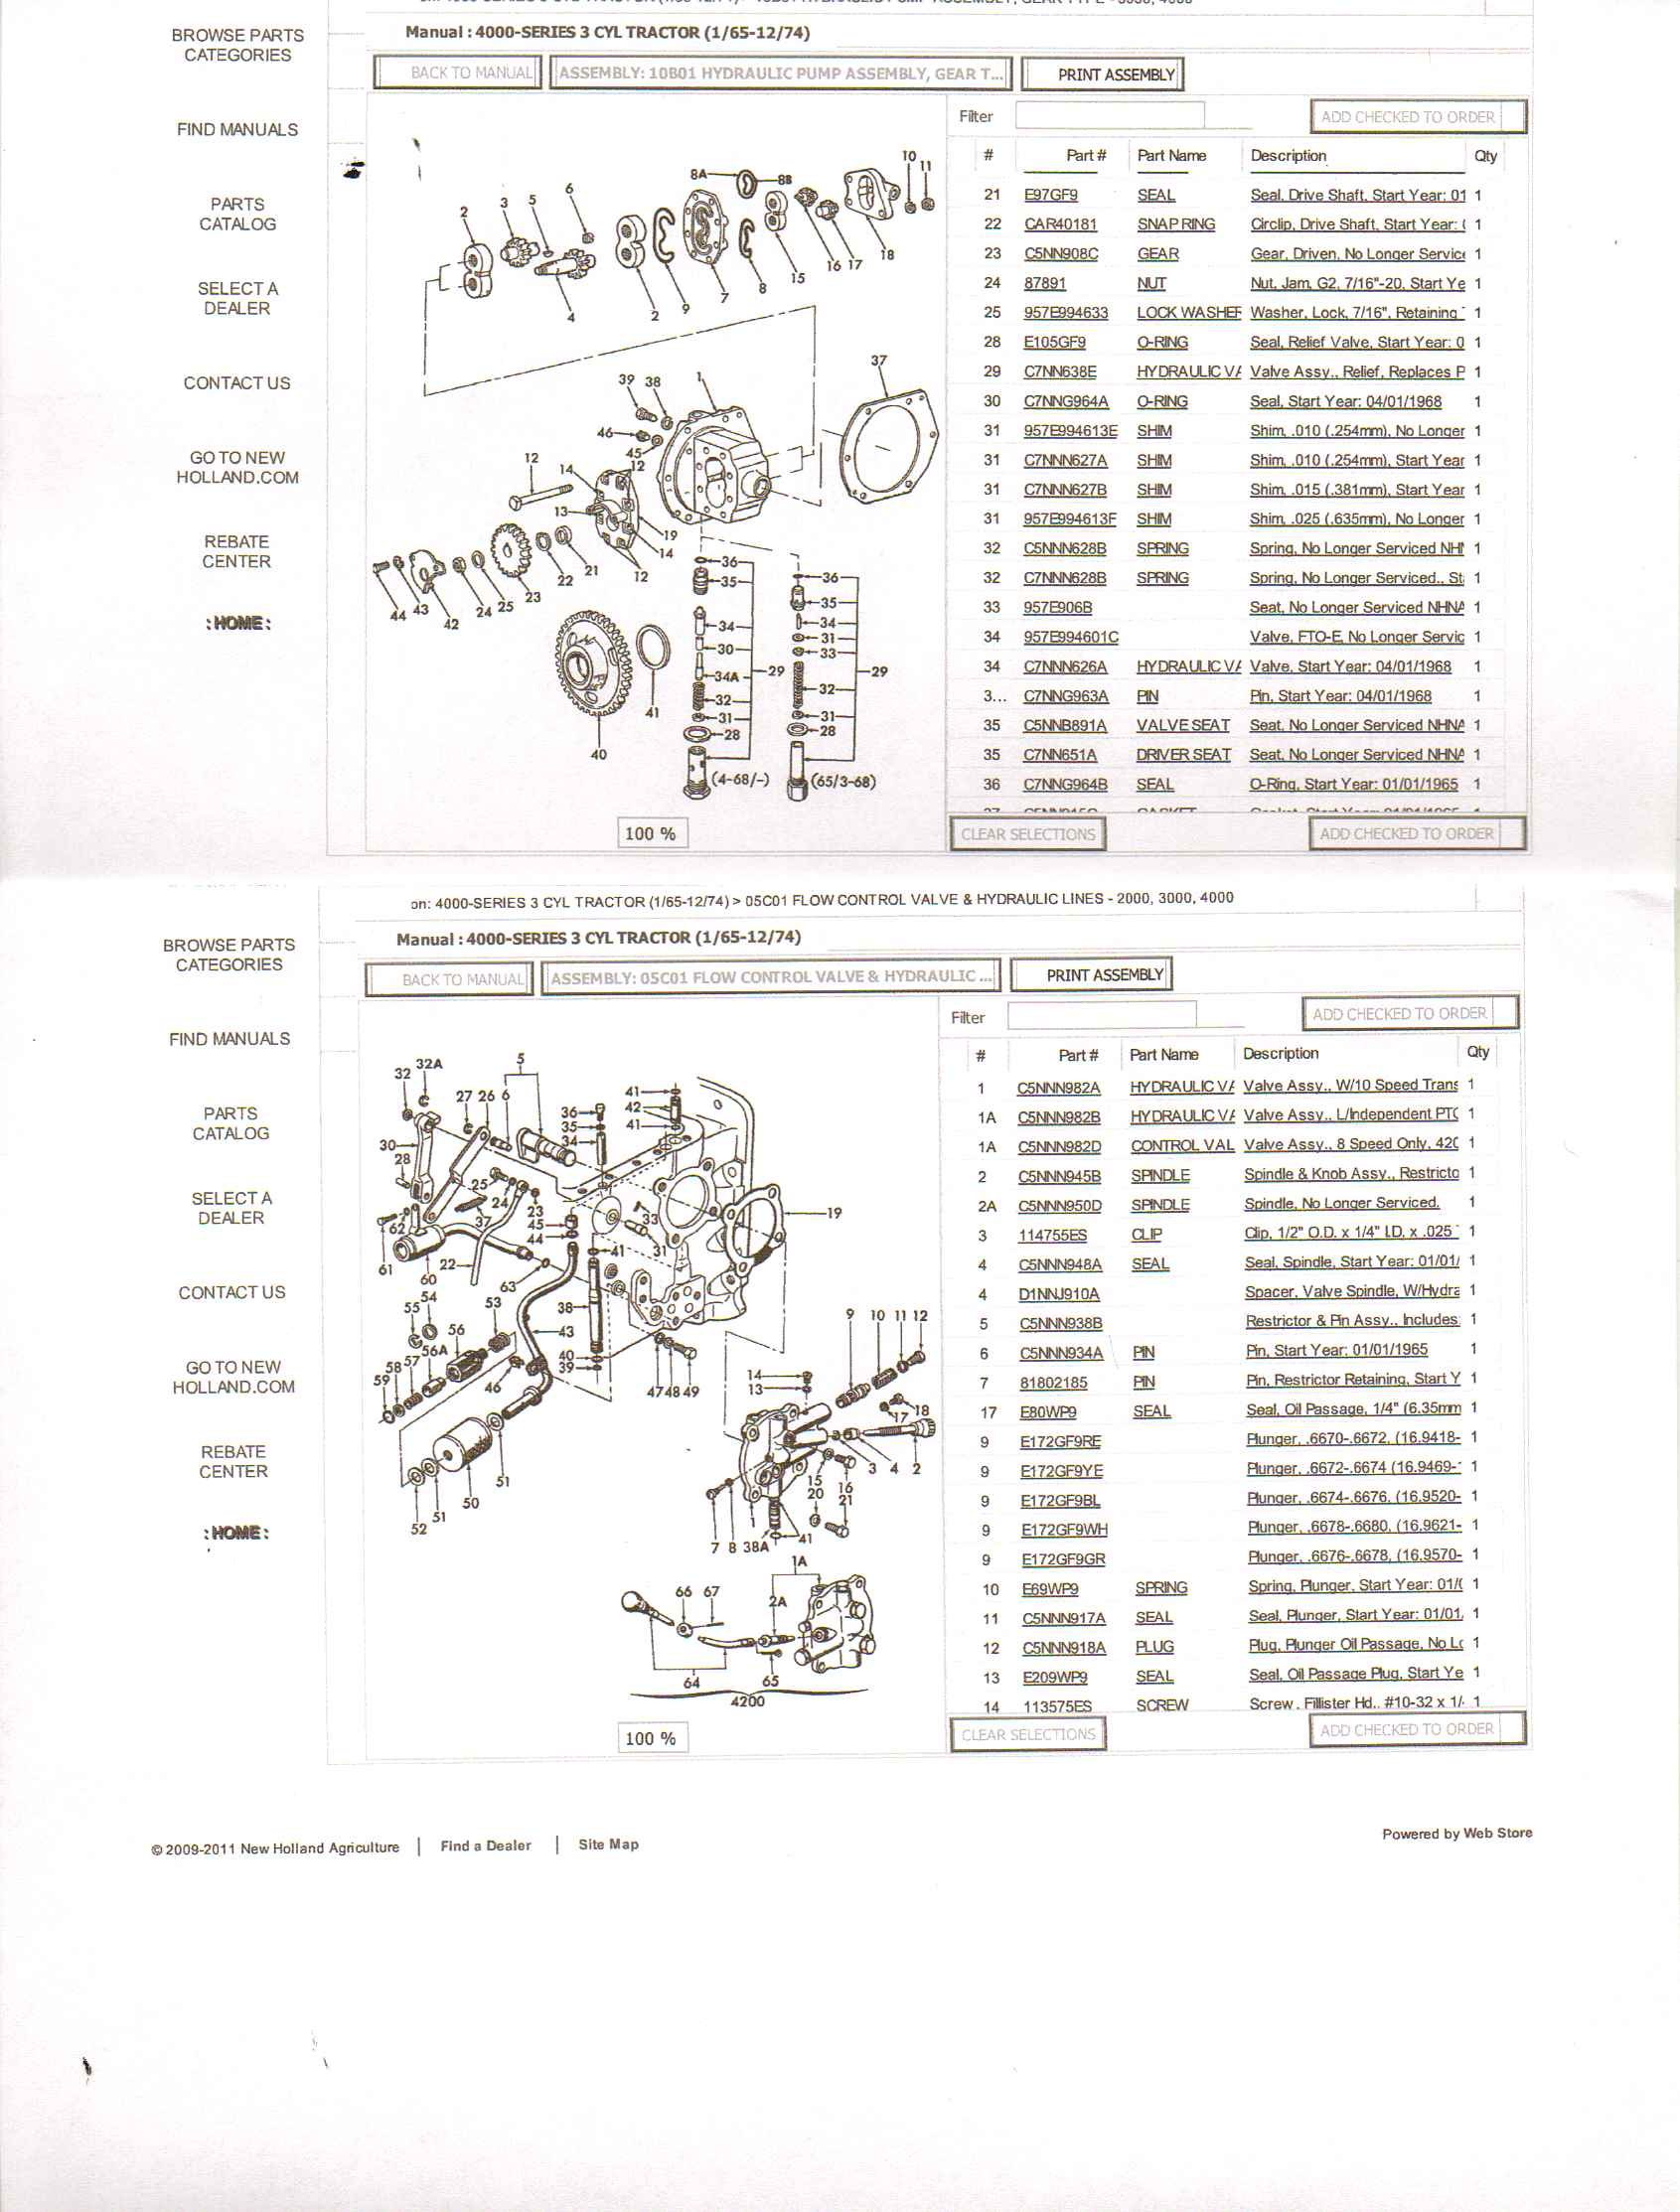 Ford 3000 Hydraulic Pump Diagram 3500 Tractor Wiring 2011 09 05 152924 4000 Simonand